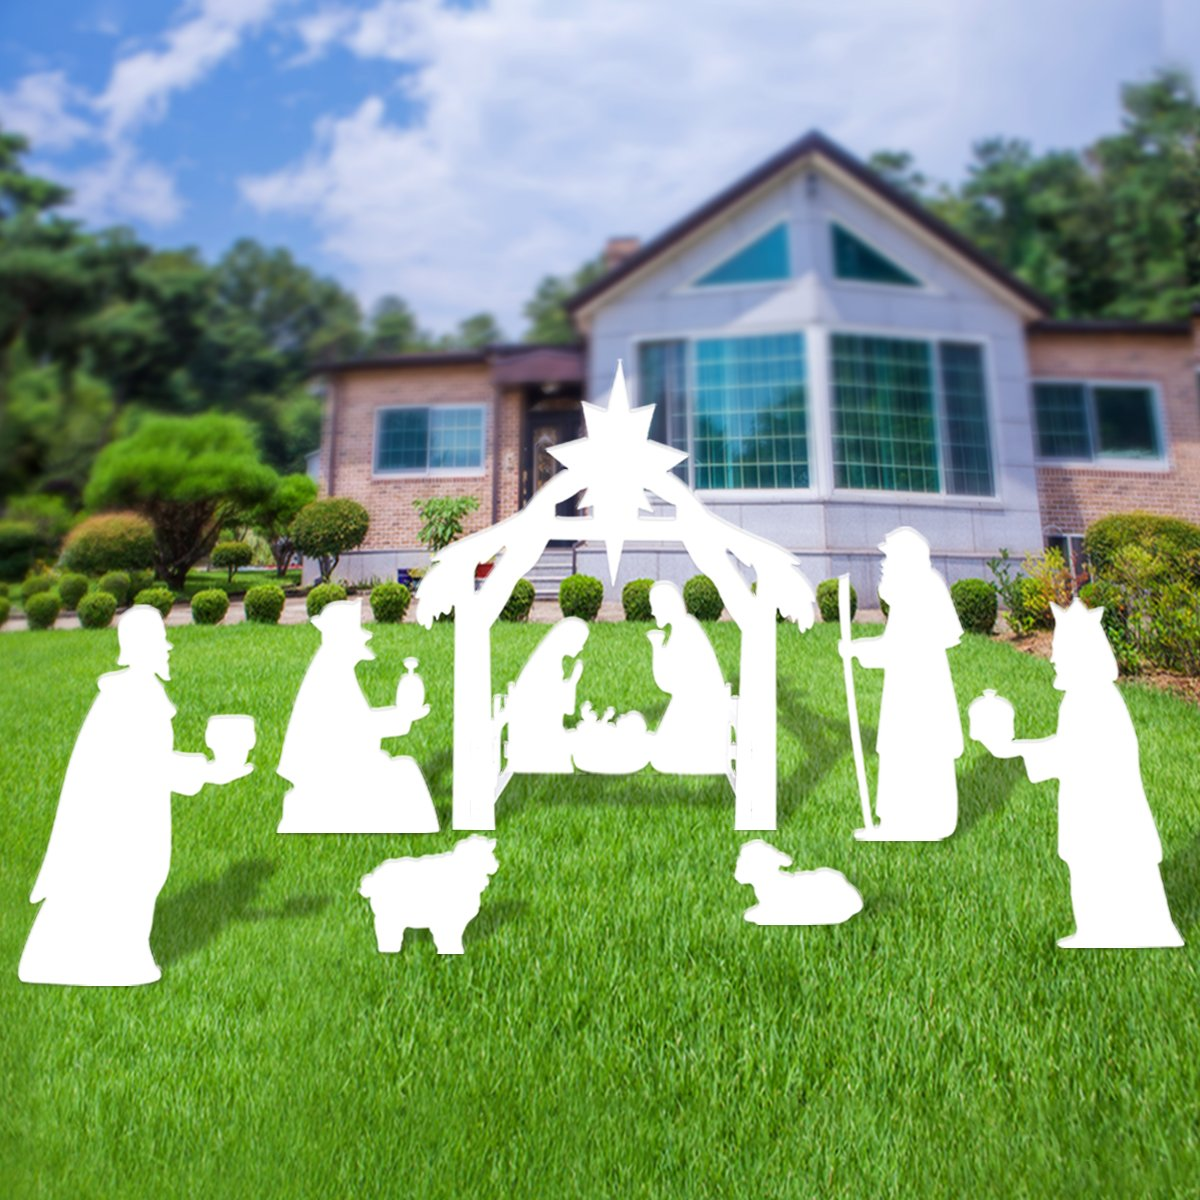 Outdoor Nativity Set, Full Yard Nativity Scene for Classic Christmas Story by None